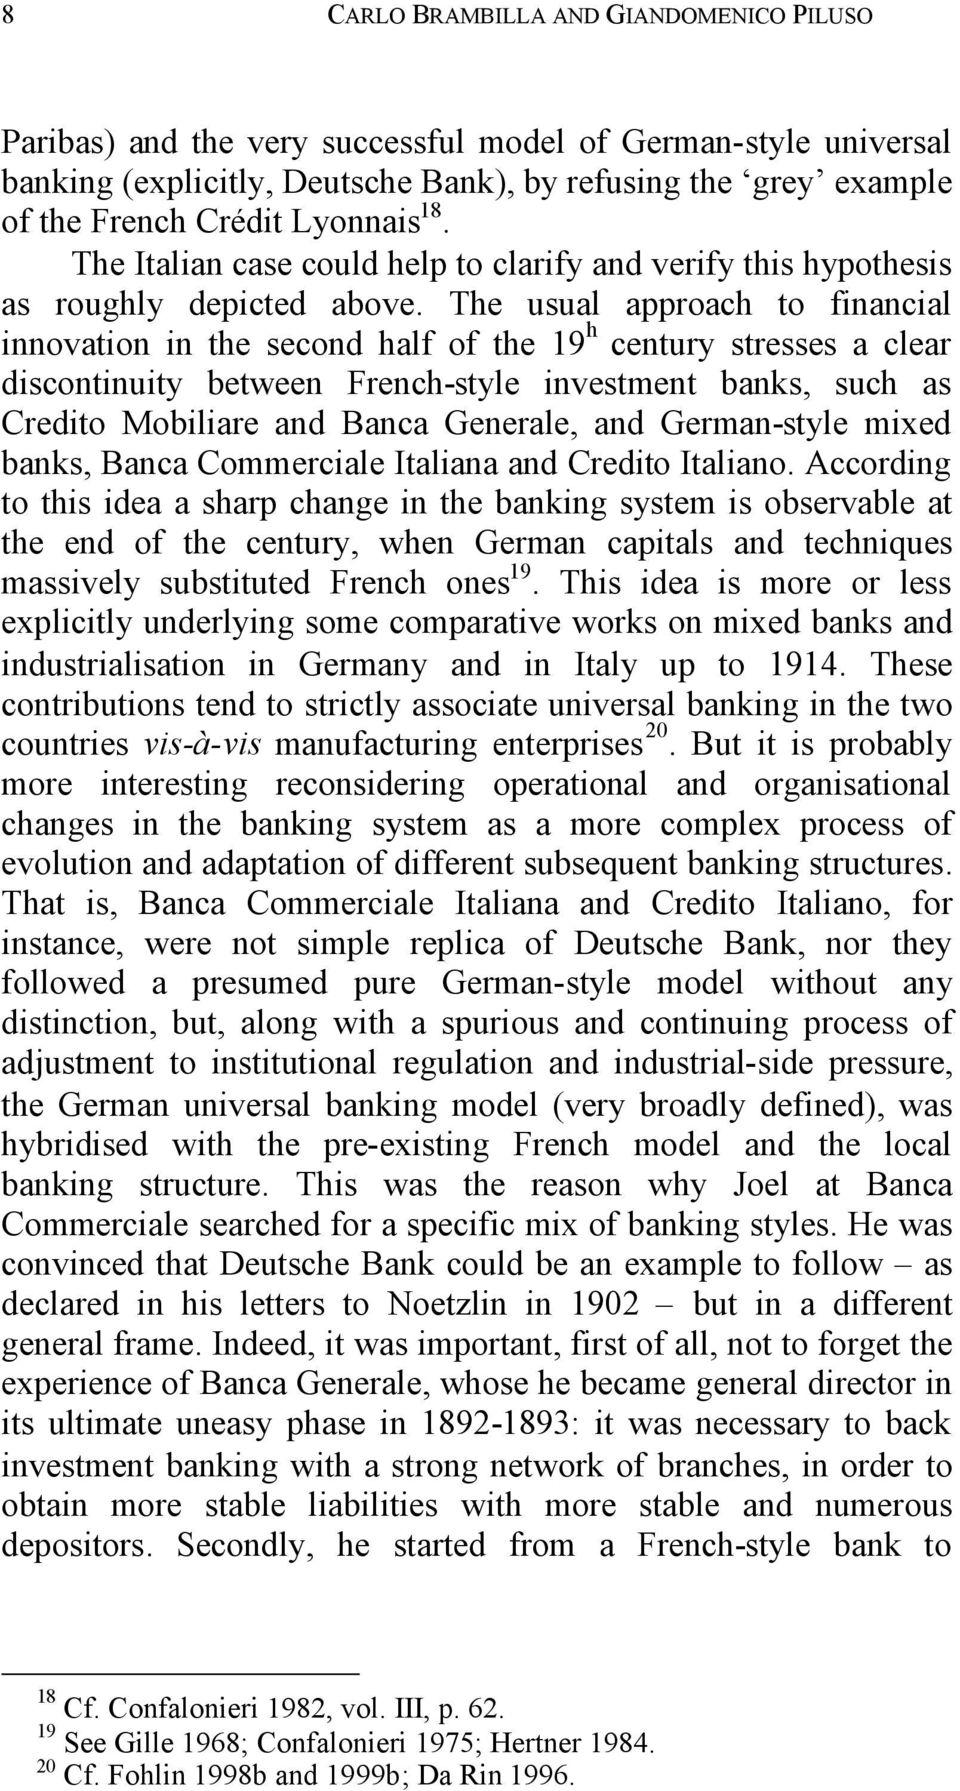 The usual approach to financial innovation in the second half of the 19 h century stresses a clear discontinuity between French-style investment banks, such as Credito Mobiliare and Banca Generale,